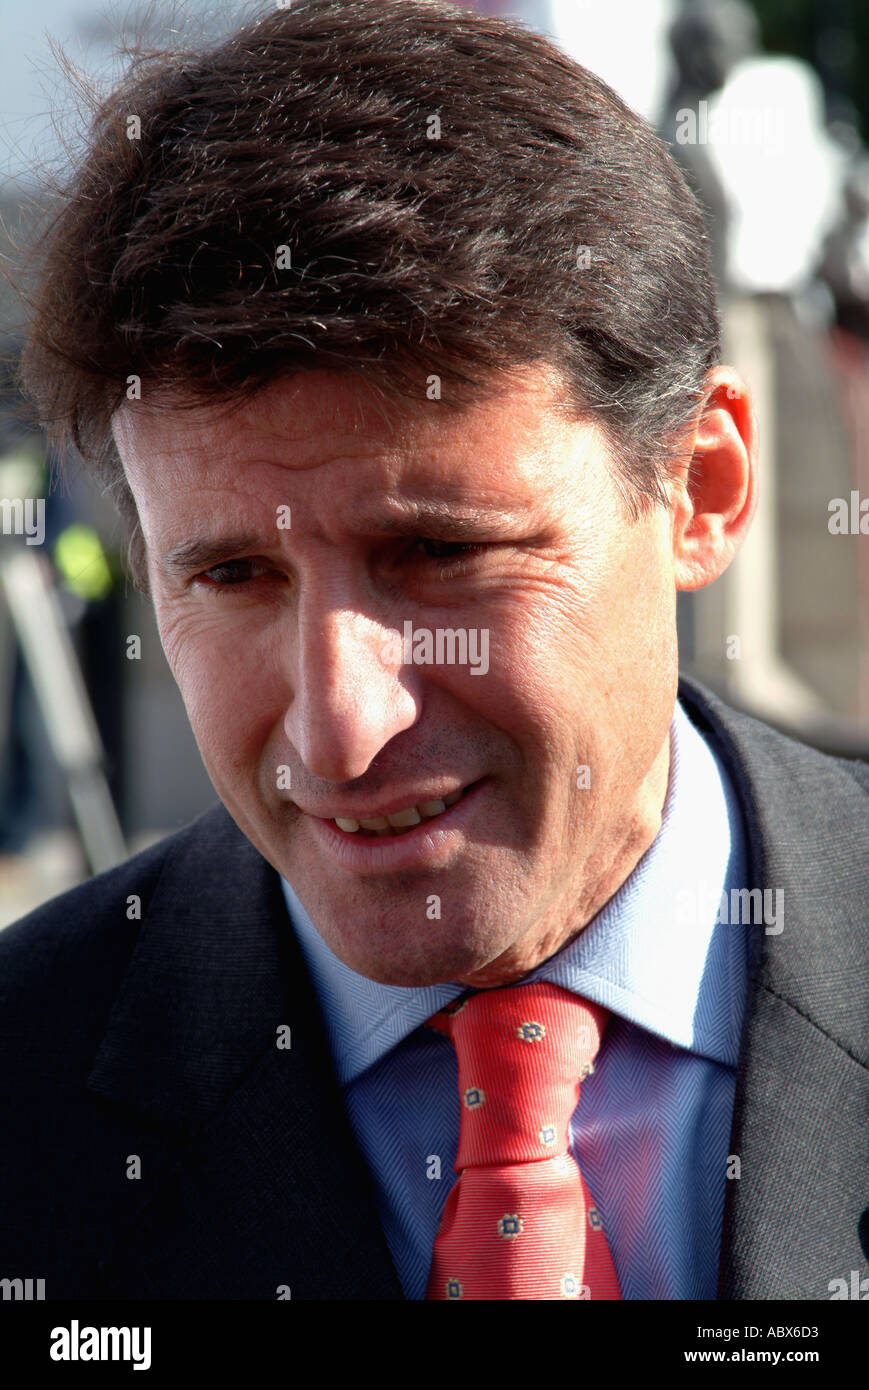 Sebastian Coe head of British Olympic committee 2012 - Stock Image